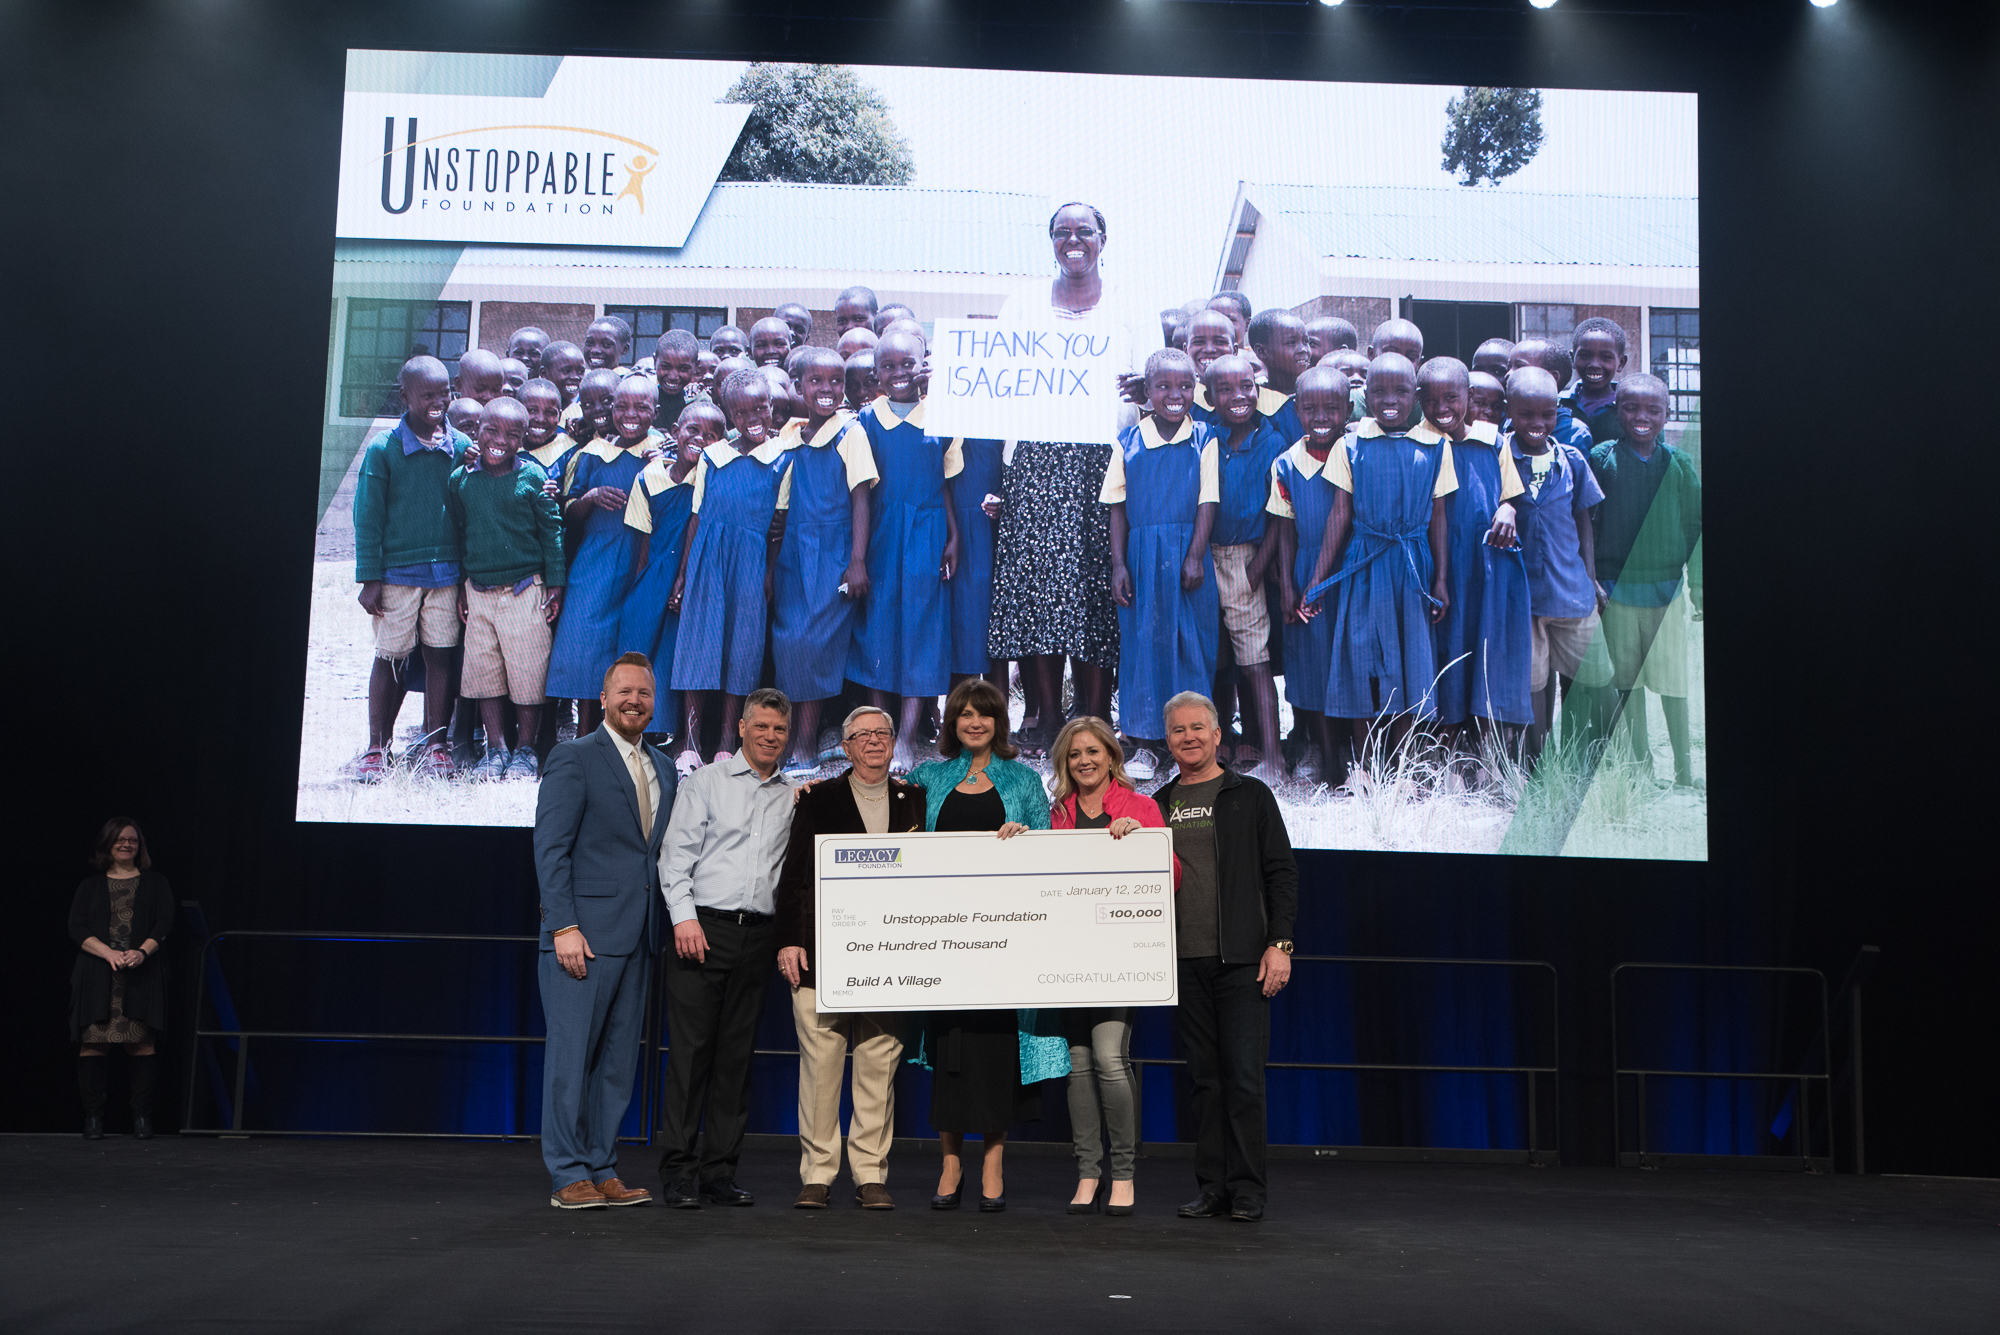 Isagenix Awards Unstoppable Foundation Grant